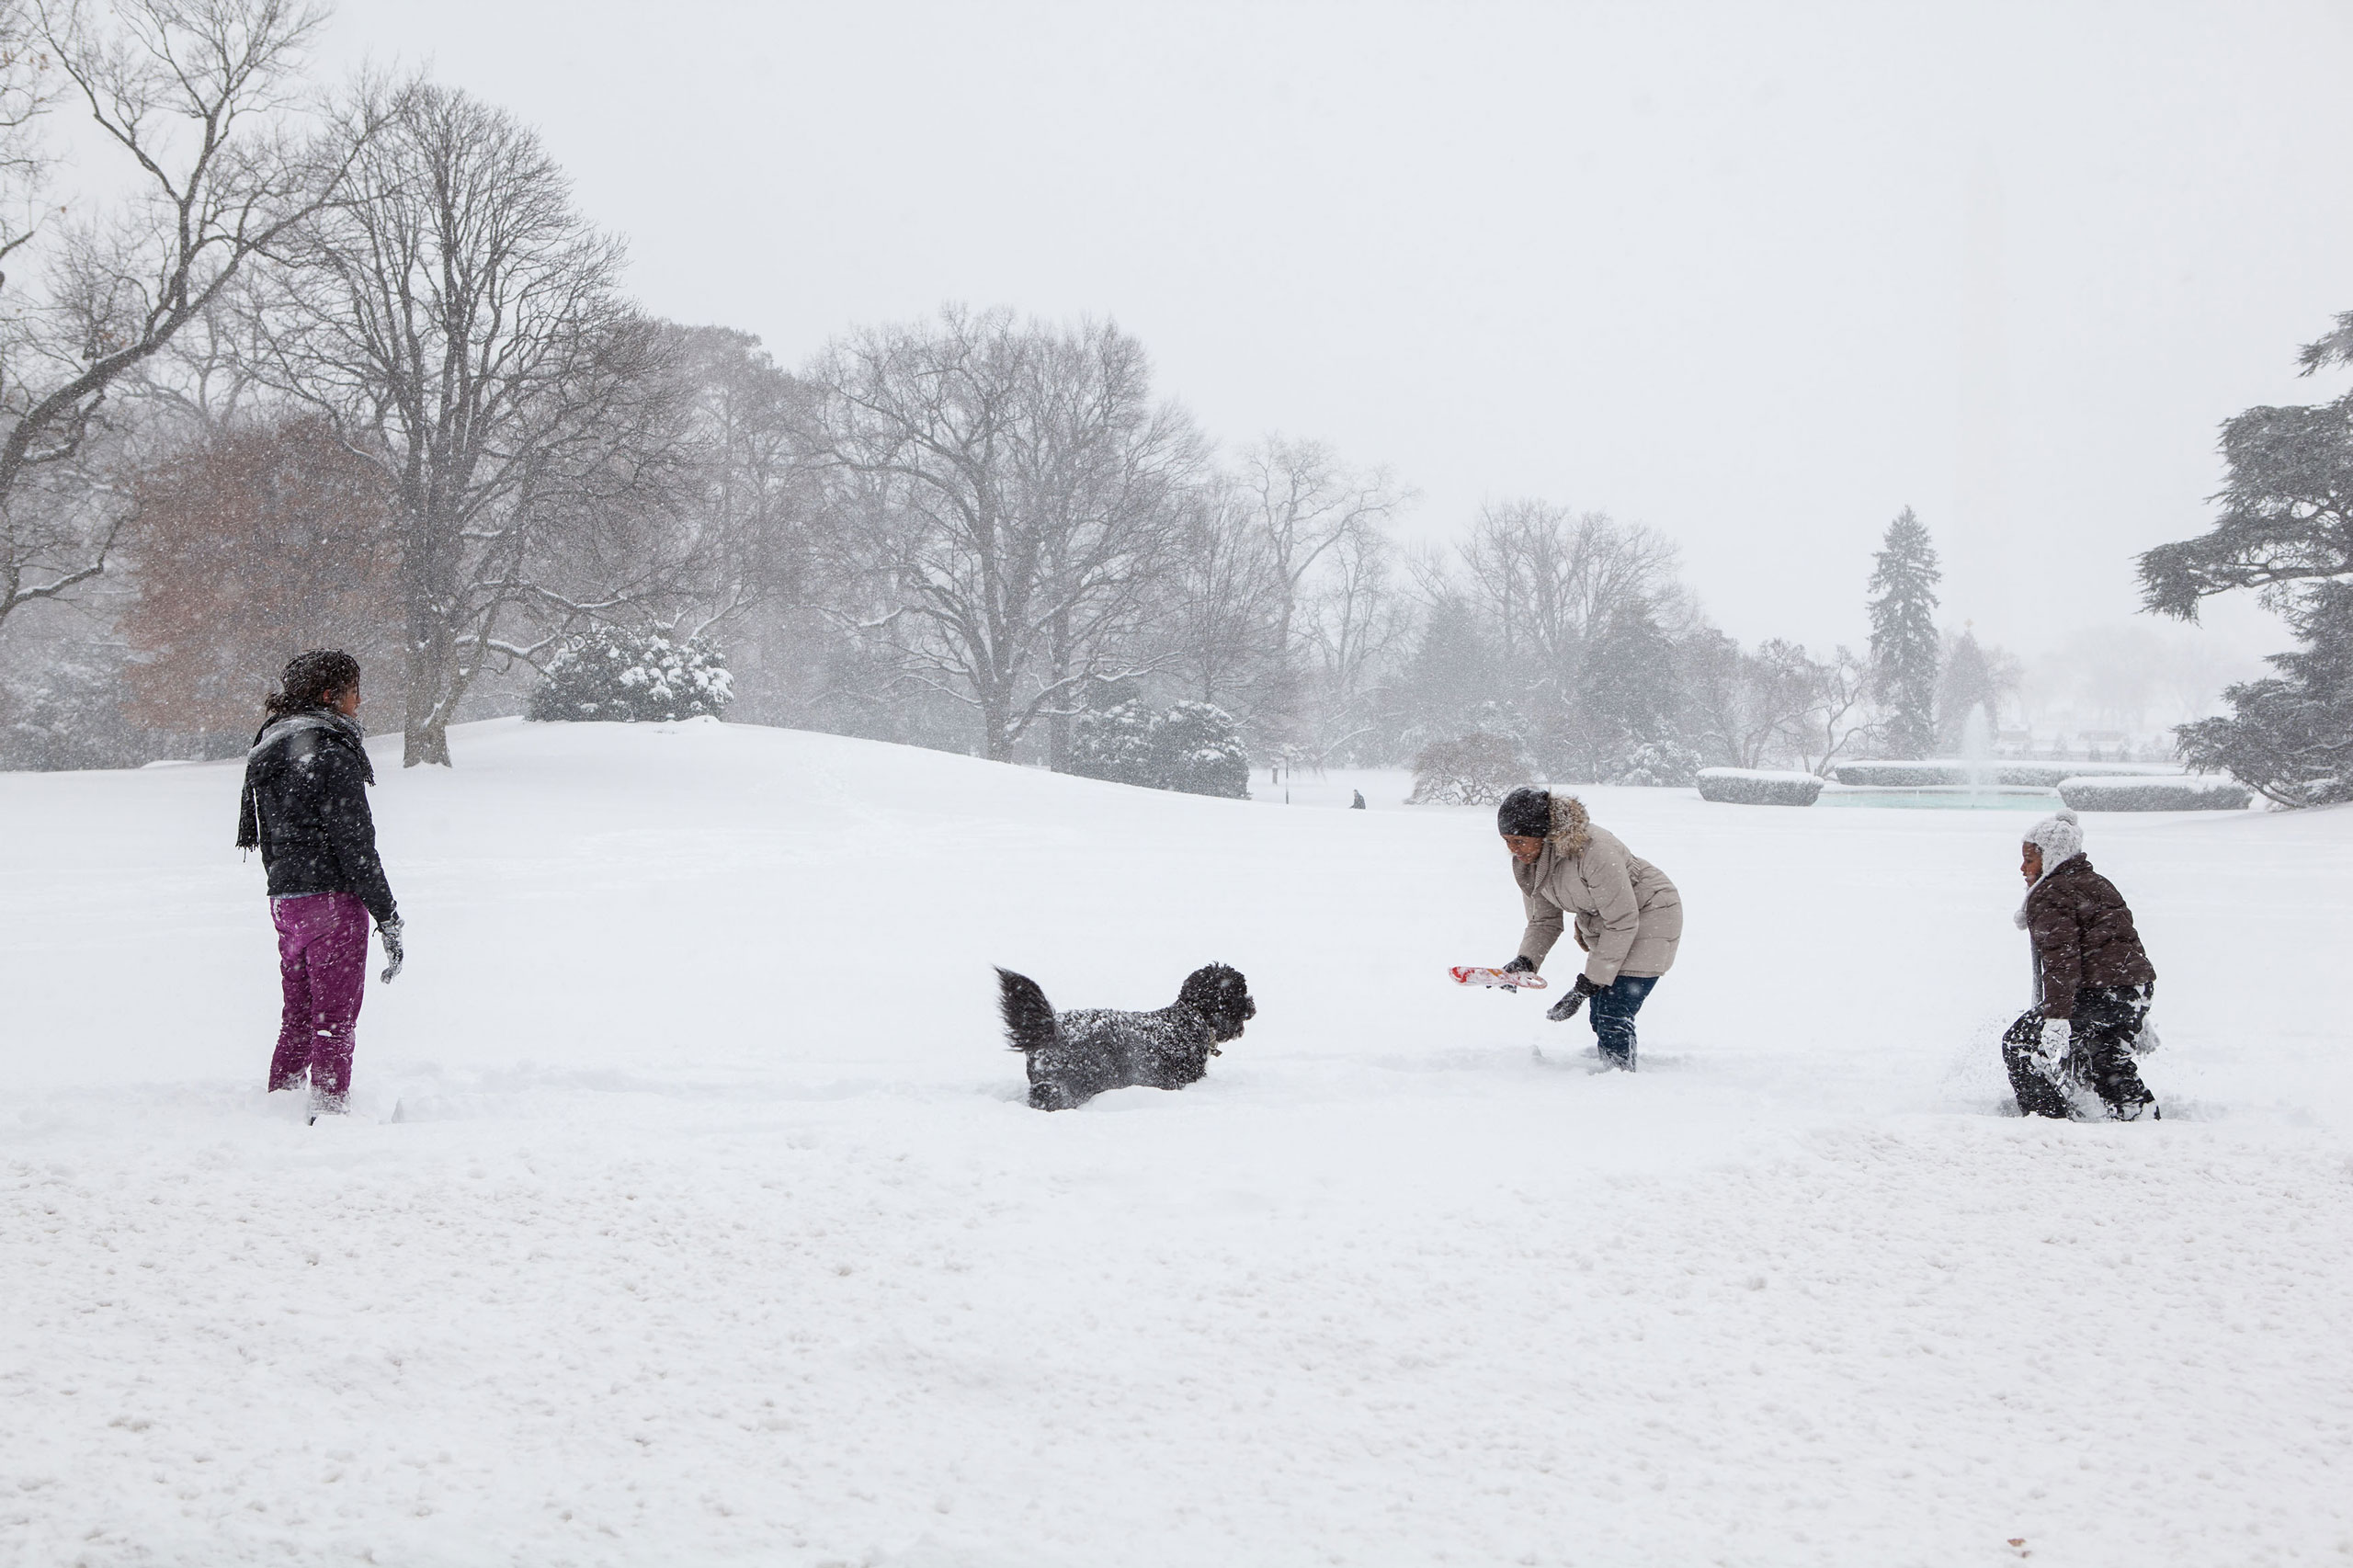 First Lady Michelle Obama and daughters Sasha and Malia, along with family dog, Bo, play in the snow on the South Lawn of the White House on Saturday, Dec. 19, 2009.